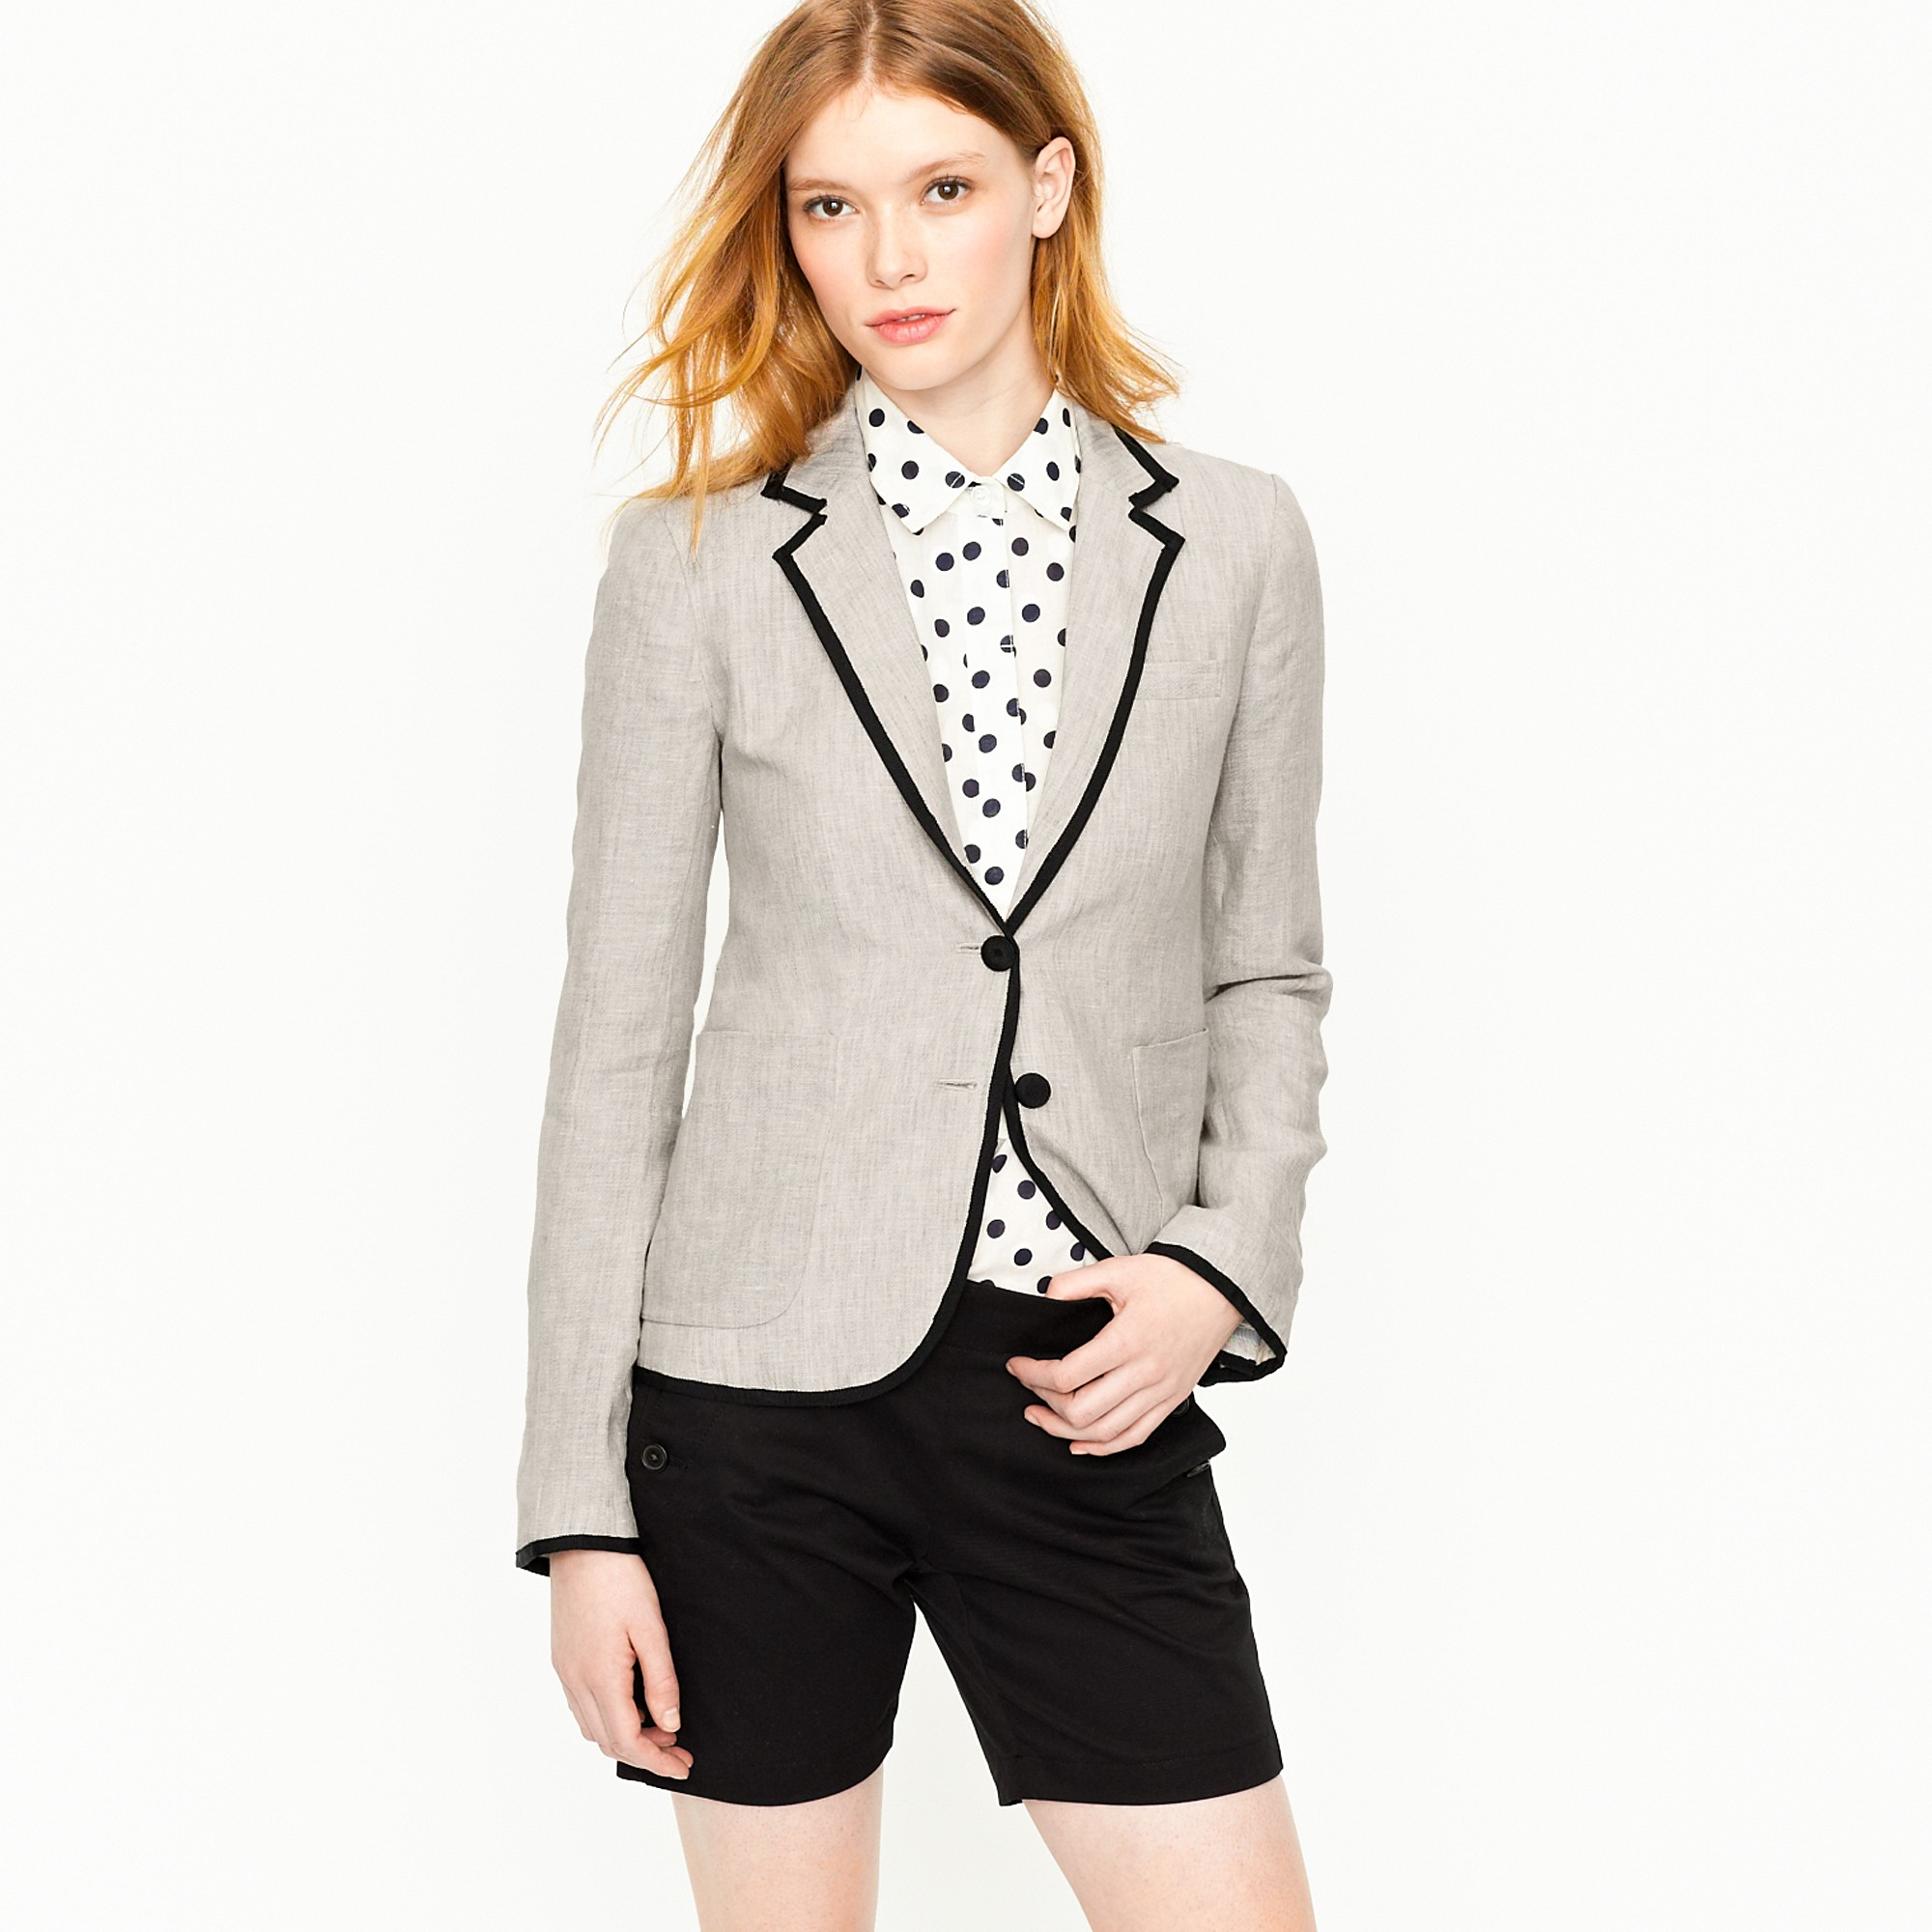 J.crew Classic Schoolboy Blazer In Tipped Linen in Natural | Lyst